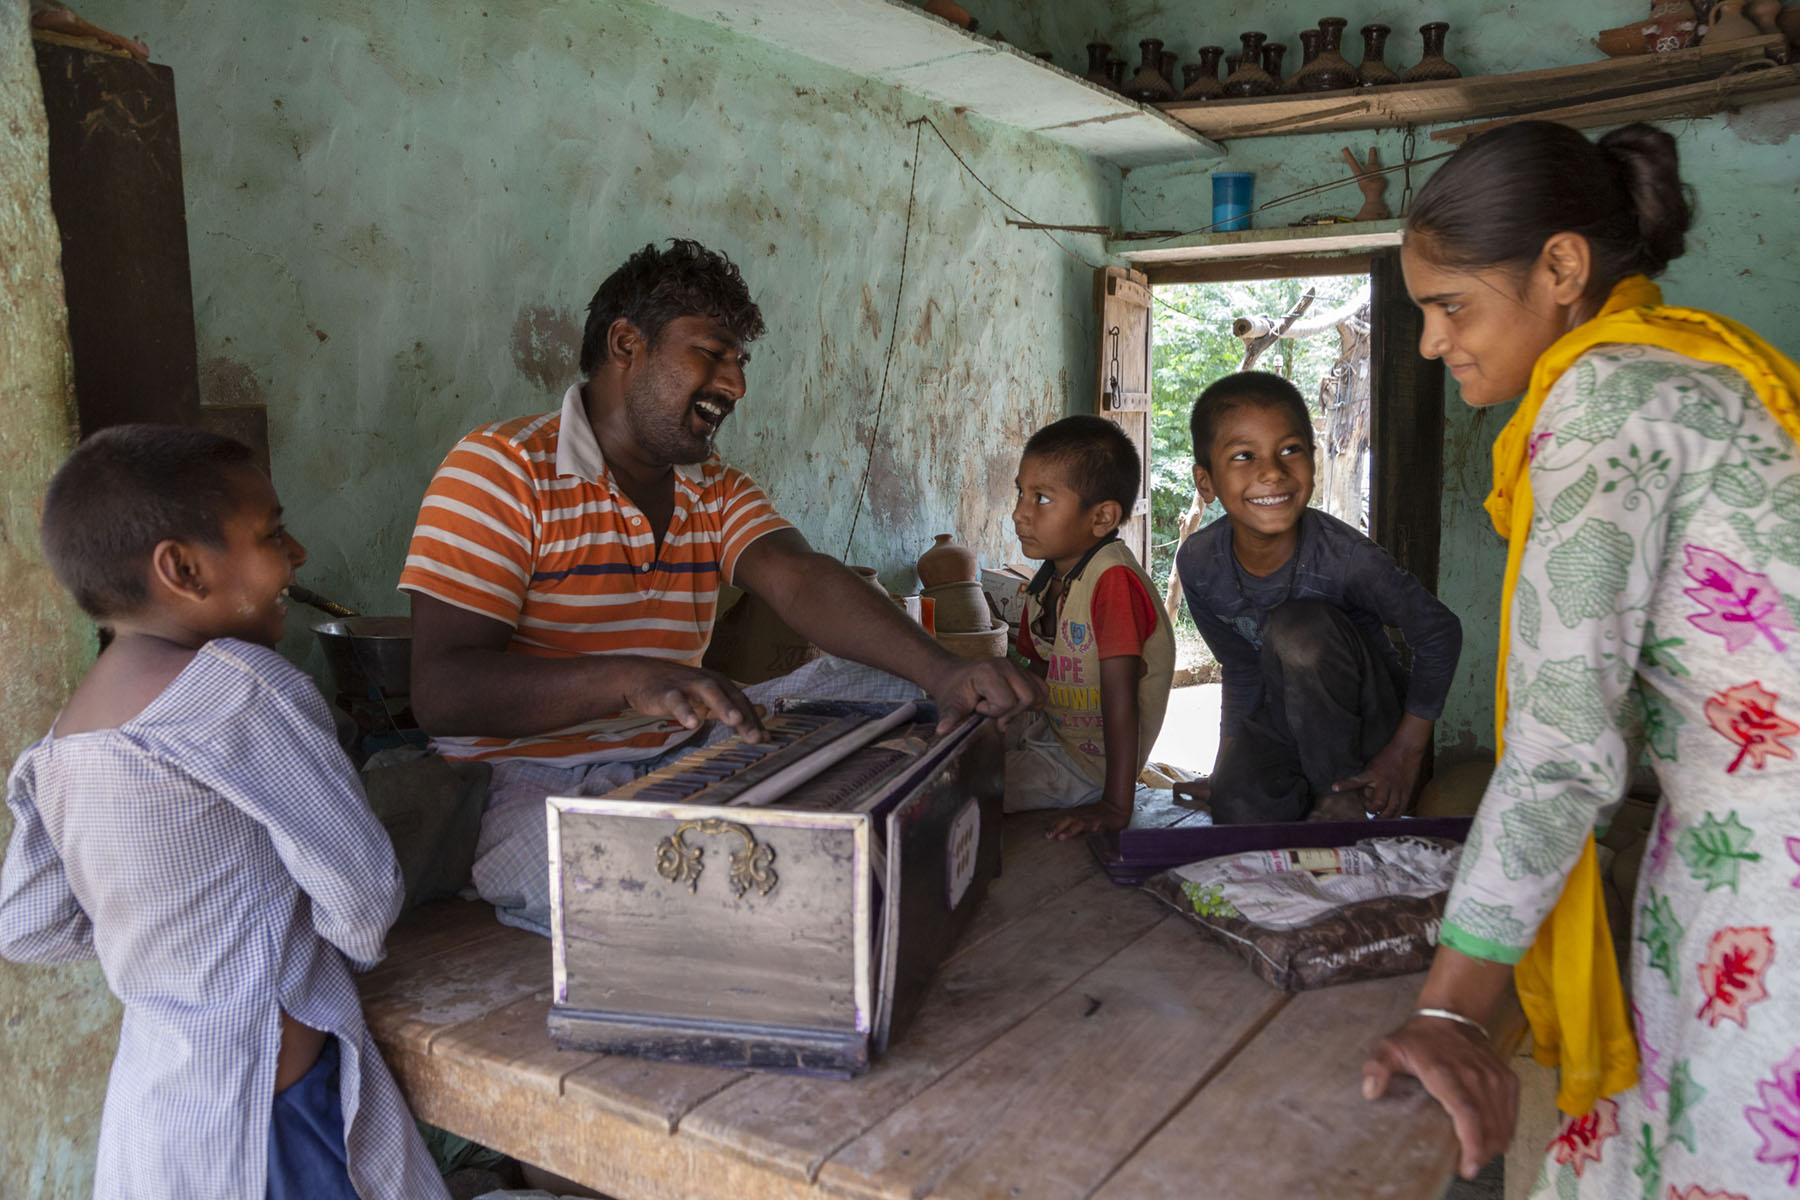 Ramotar wearing an orange and white striped T-shirt is sitting on the left edge of a wooden platform, singing and playing the harmonium. Opposite him stands his niece Chanchal in a printed salwar kameez and yellow dupatta looking at him with a half-smile. Sitting on the far edge of the platform are Ramotar's son Manish Kumar (6) and daughter Prerna (5). Manish is smiling broadly at Chanchal while Prerna is staring at Ramotar. Standing on this side of the platform is Ramotar's older daughter Ekta Rani (8), smiling at Manish. All the children have close-cropped hair.